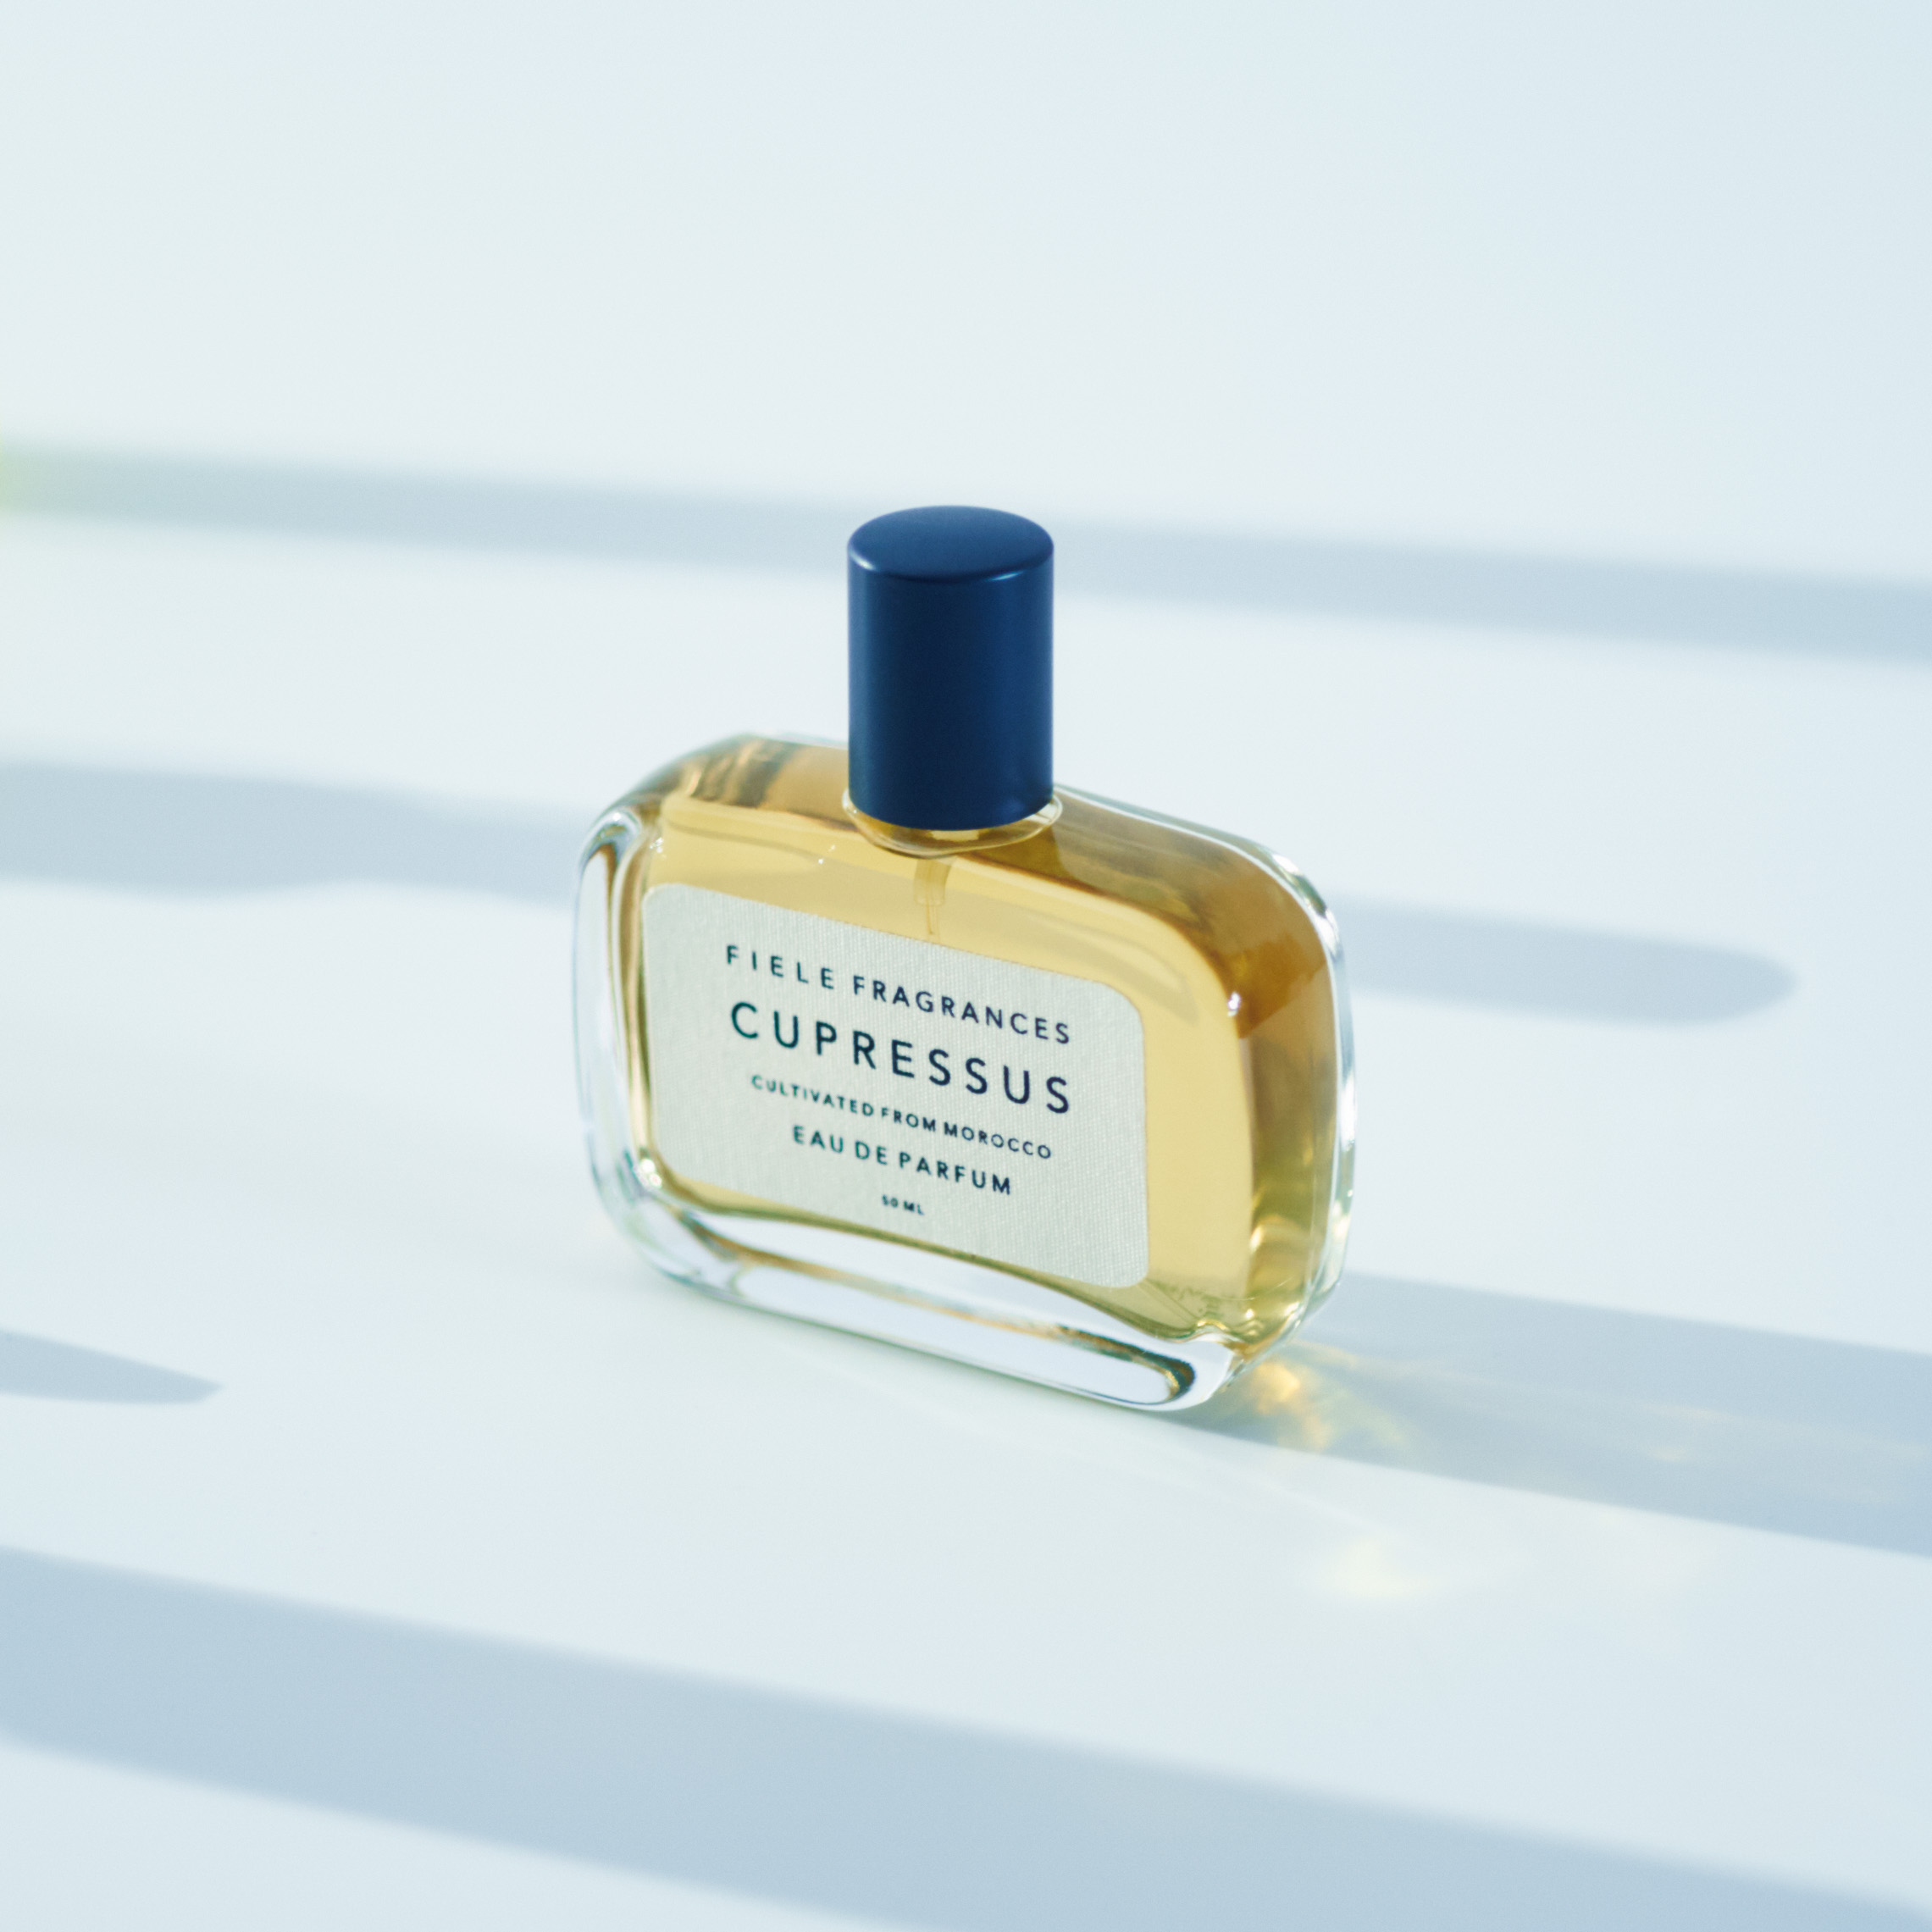 FIELE FRAGRANCES CUPRESSUS (オードパルファム) 50㎖ ¥14,000